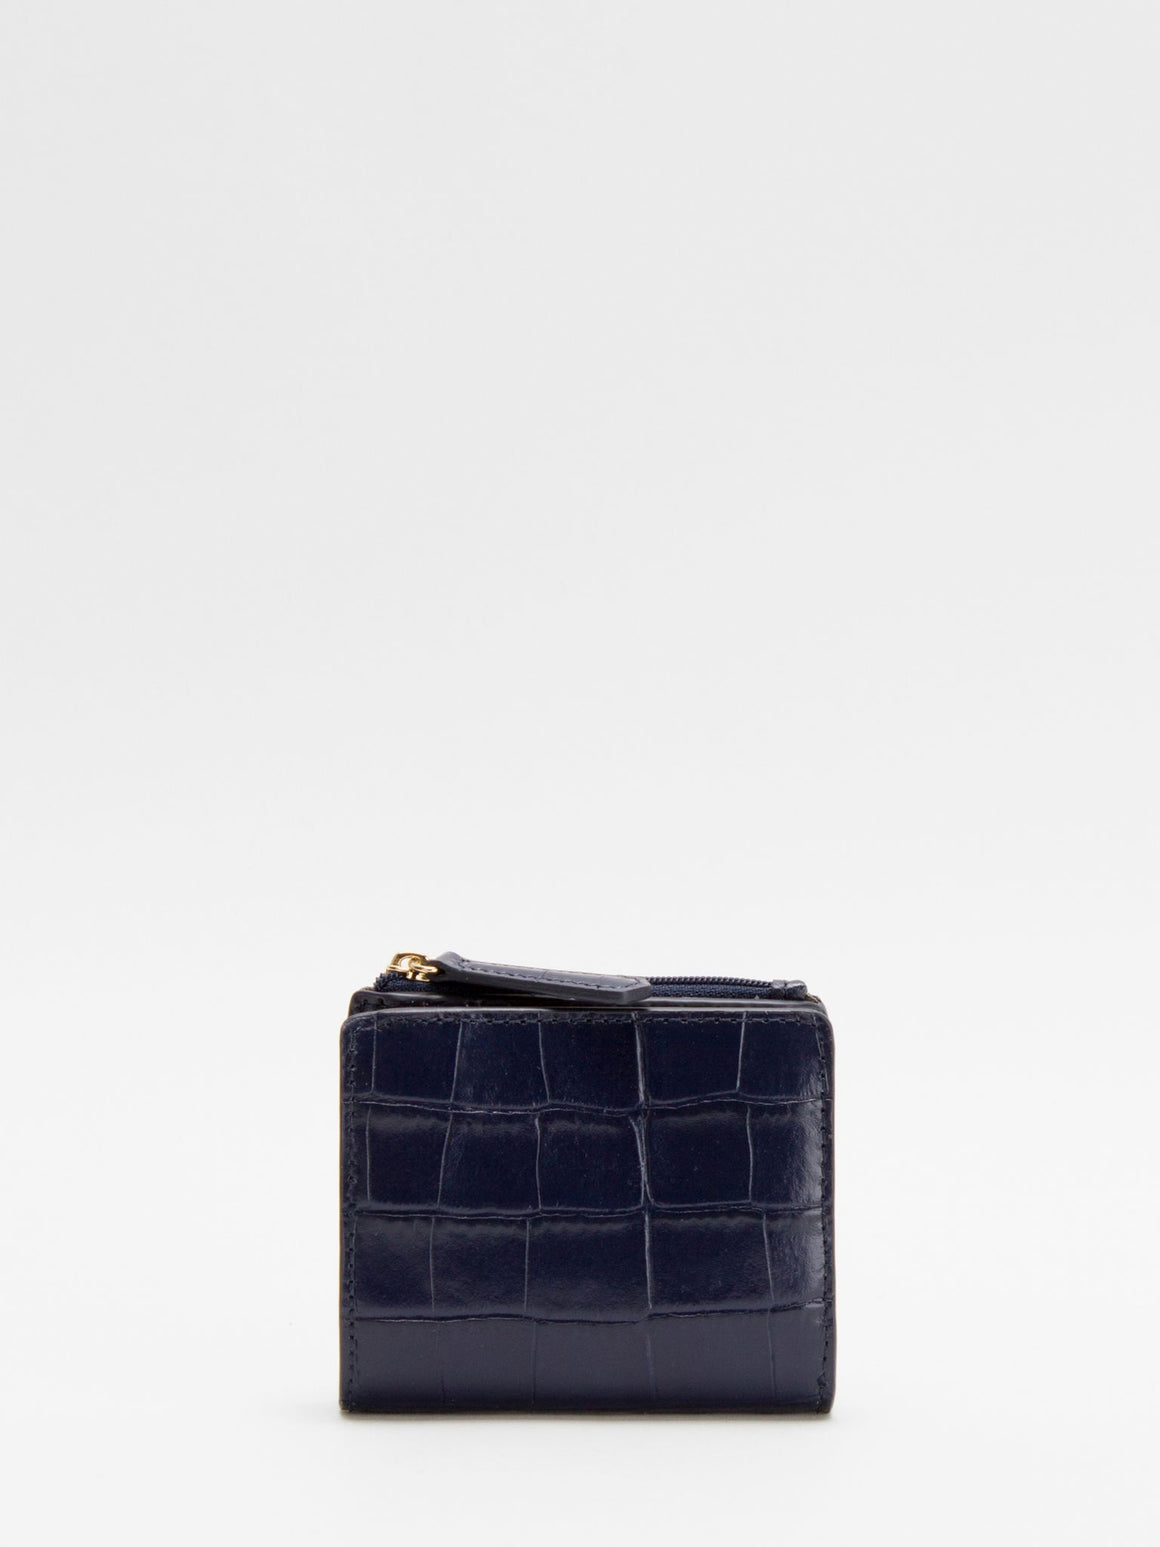 Justina Small Leather Wallet - Glazed Navy